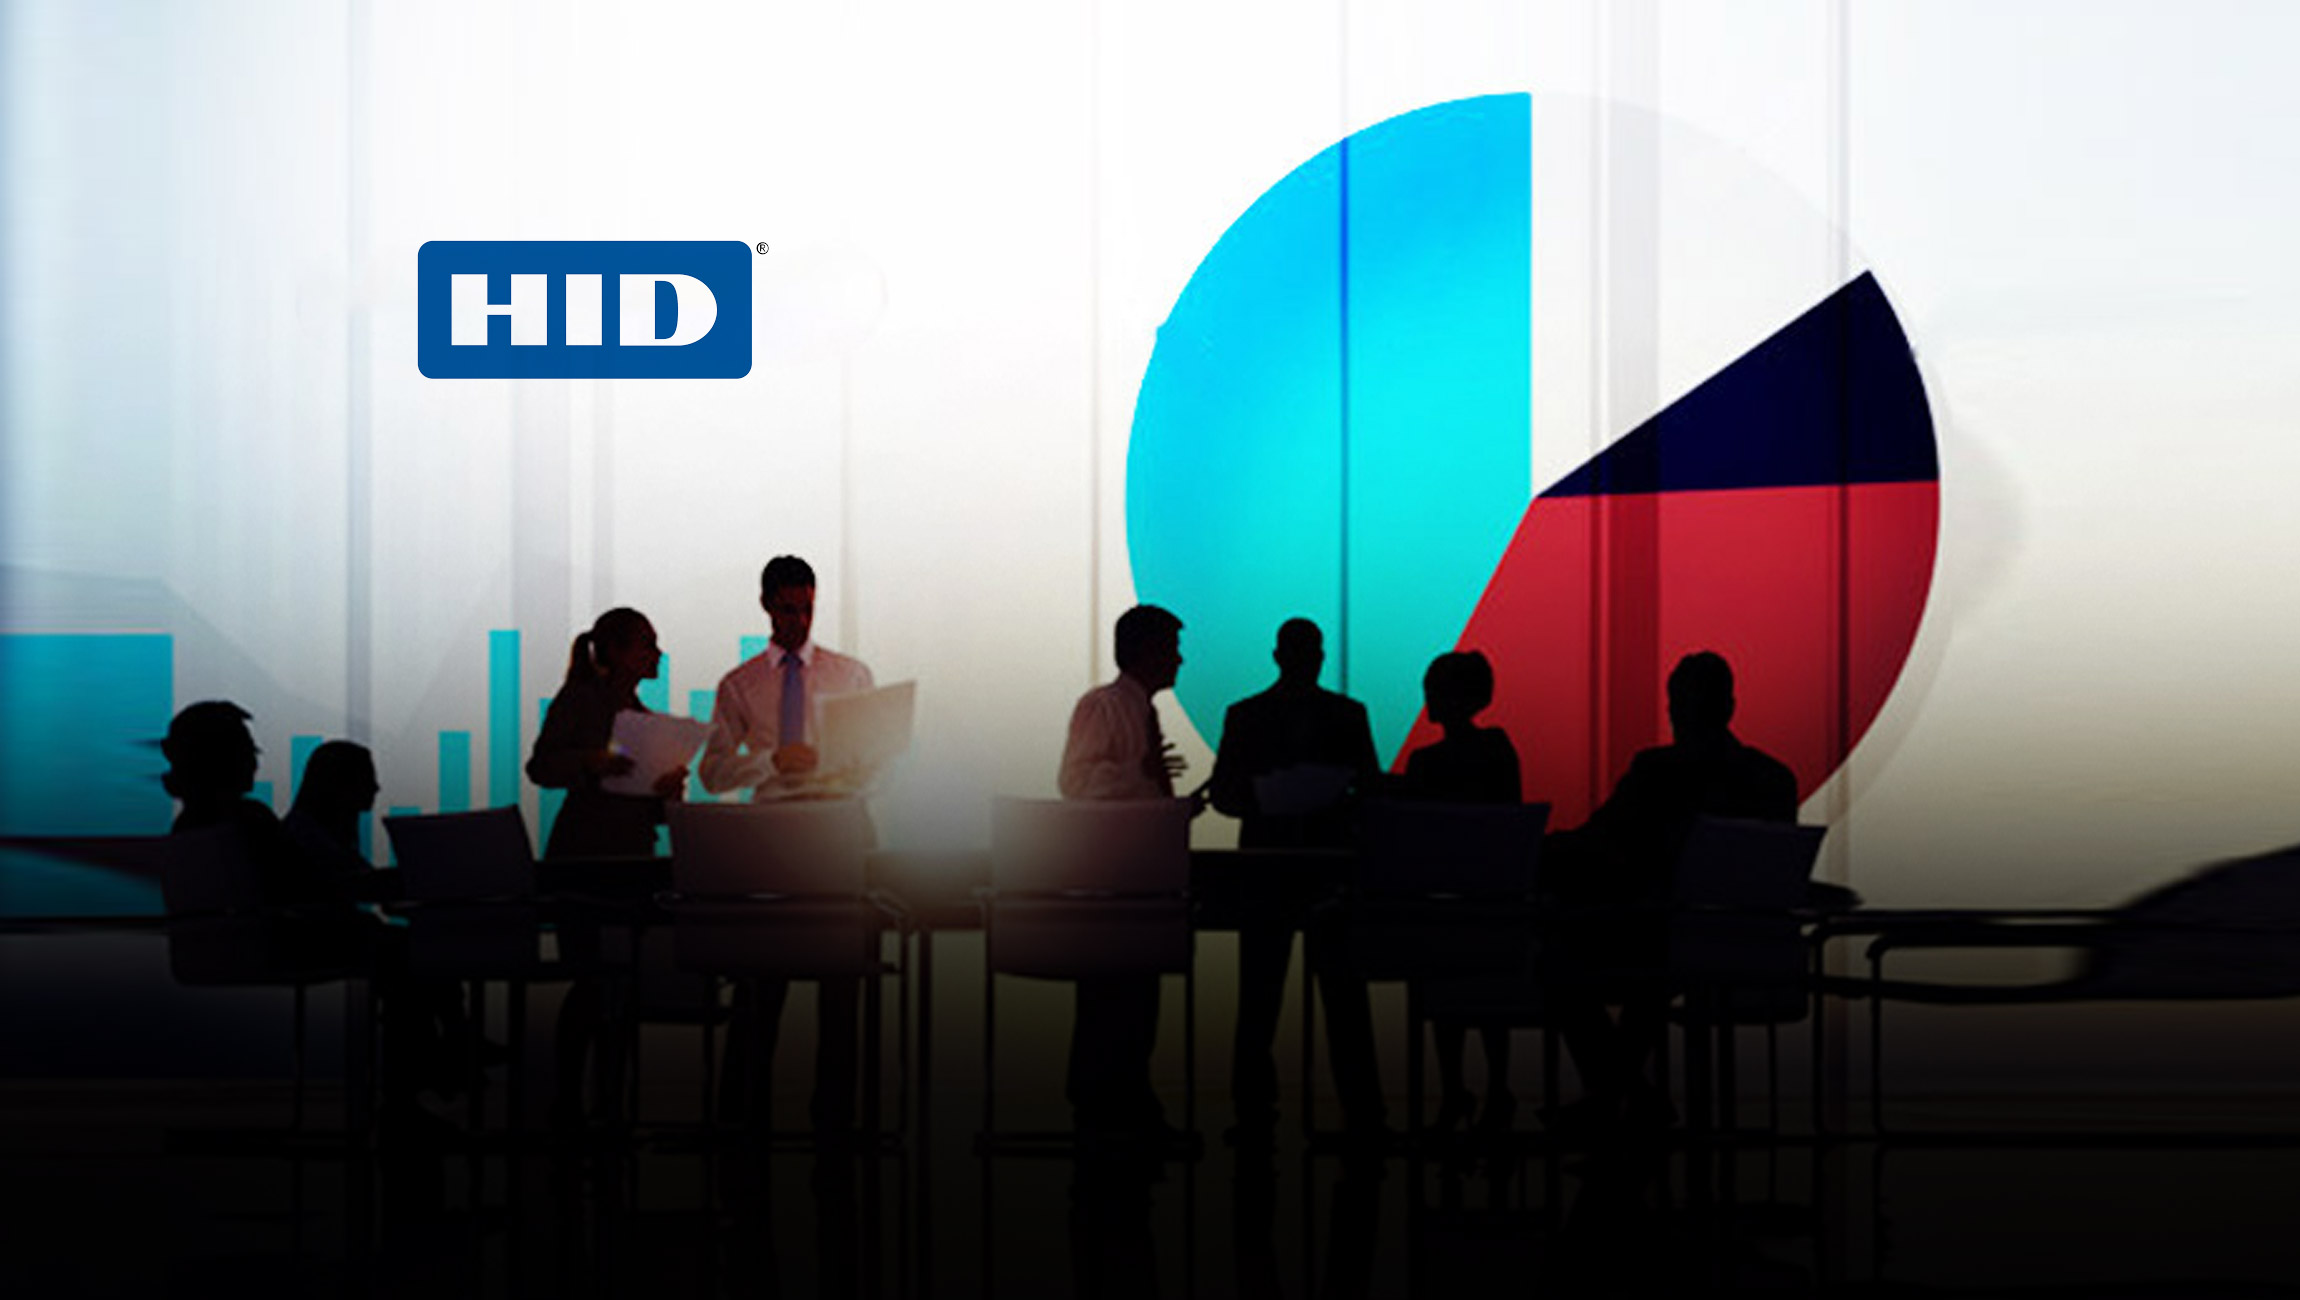 HID-Global-Adds-Risk-and-Occupancy-Analytics-to-HID-SAFE_-its-Physical-Identity-and-Access-Management-Solution-for-Today's-Hybrid-Workplaces